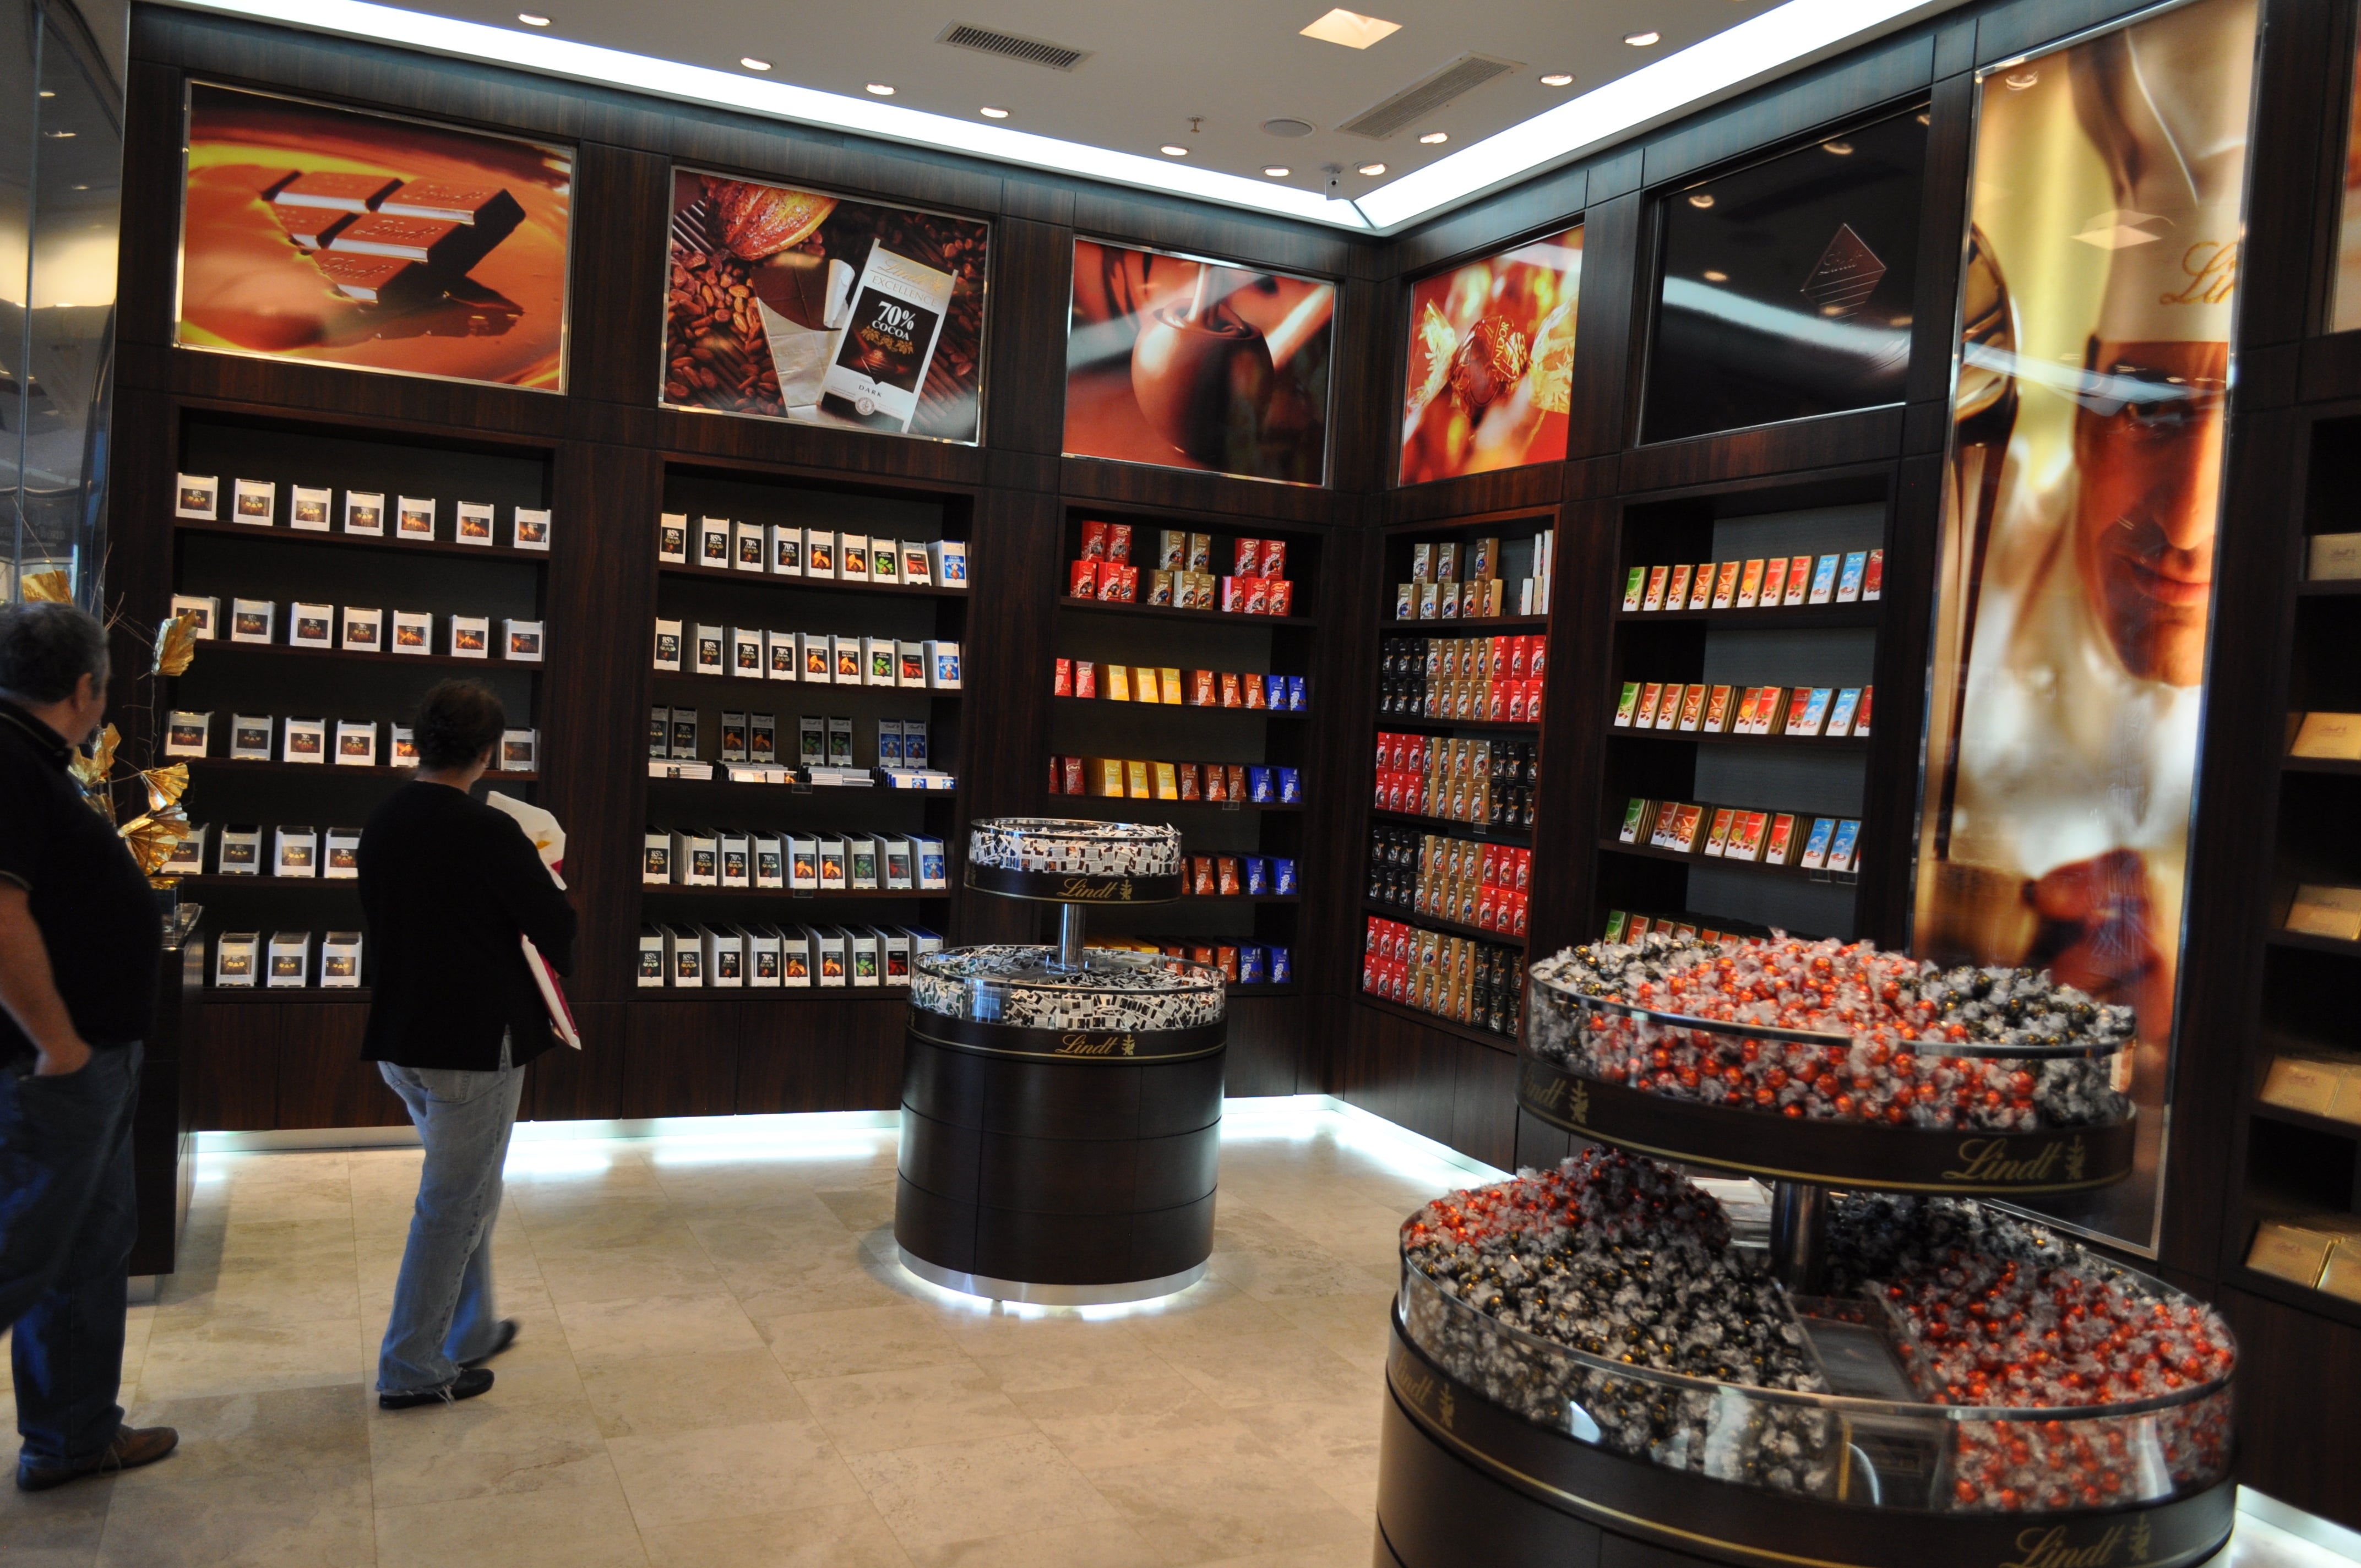 Magasin de chocolats LINDT